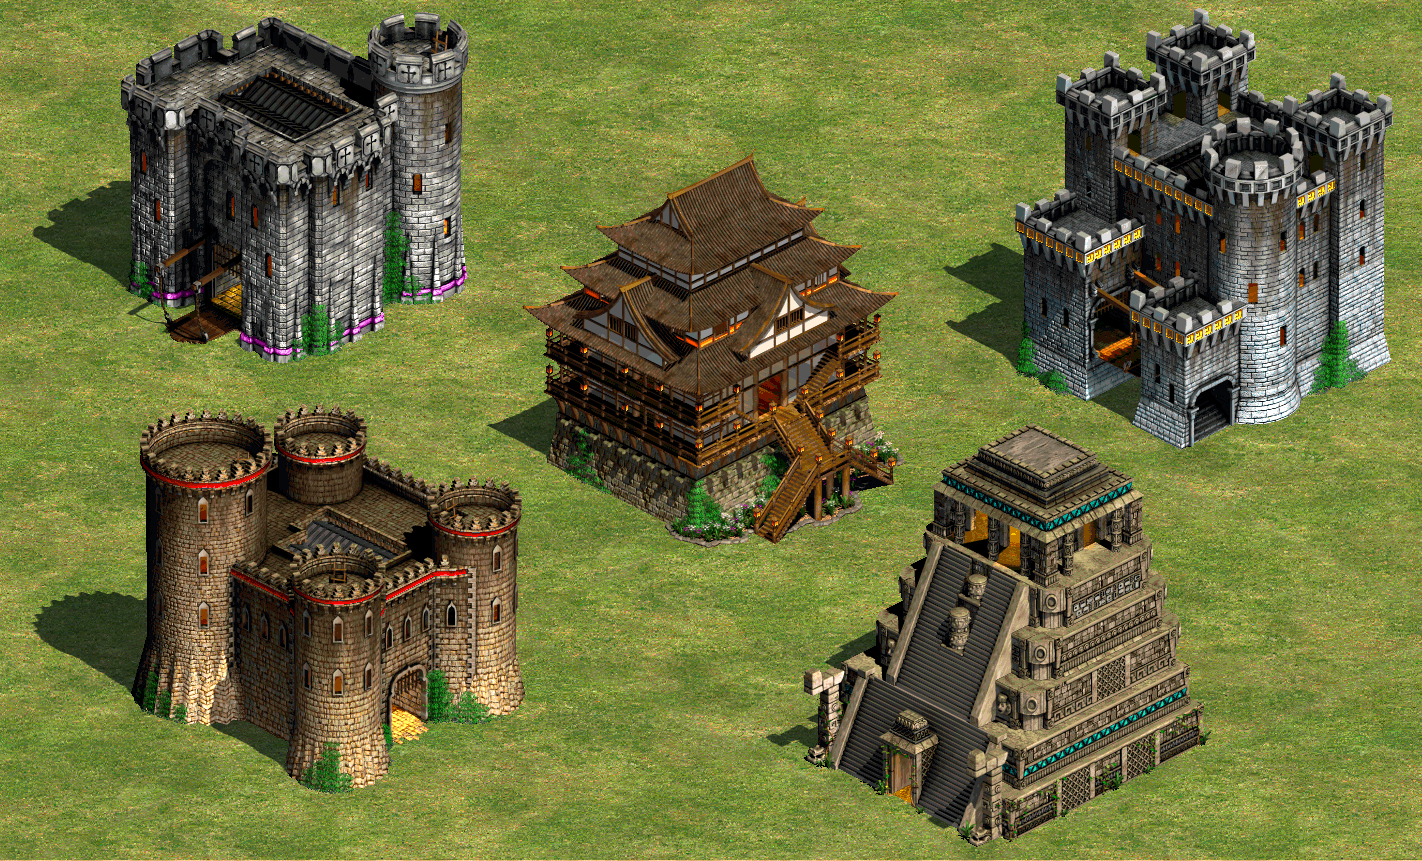 Castle (Age of Empires II) | Age of Empires Series Wiki | FANDOM